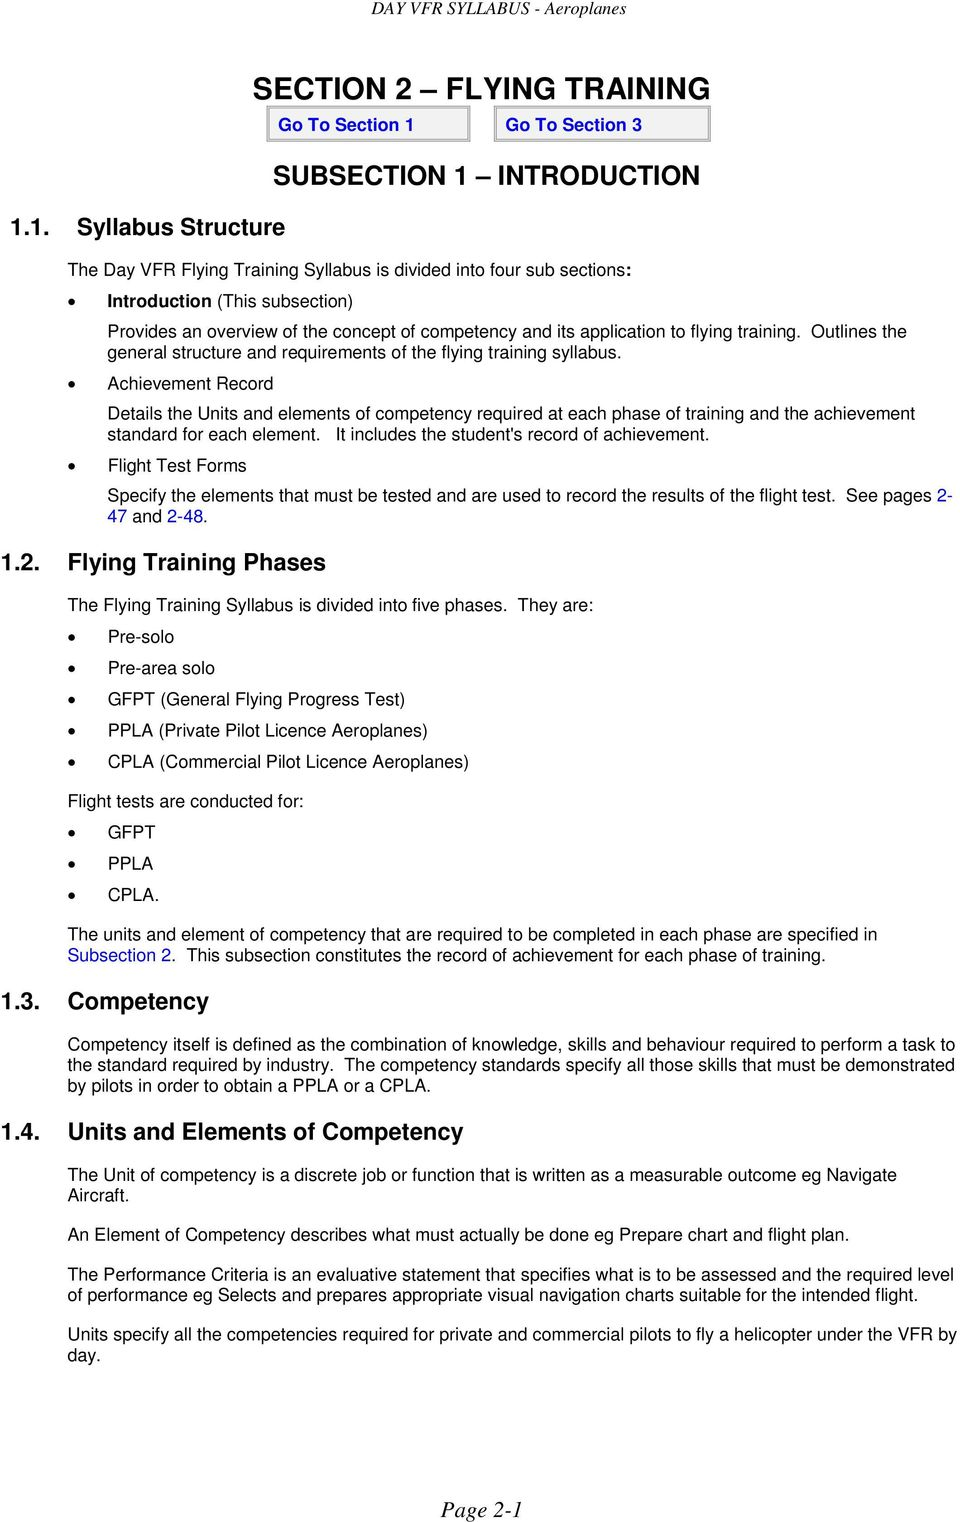 Achievement Record Details the Units and elements of competency required at each phase of training and the achievement standard for each element. It includes the student's record of achievement.